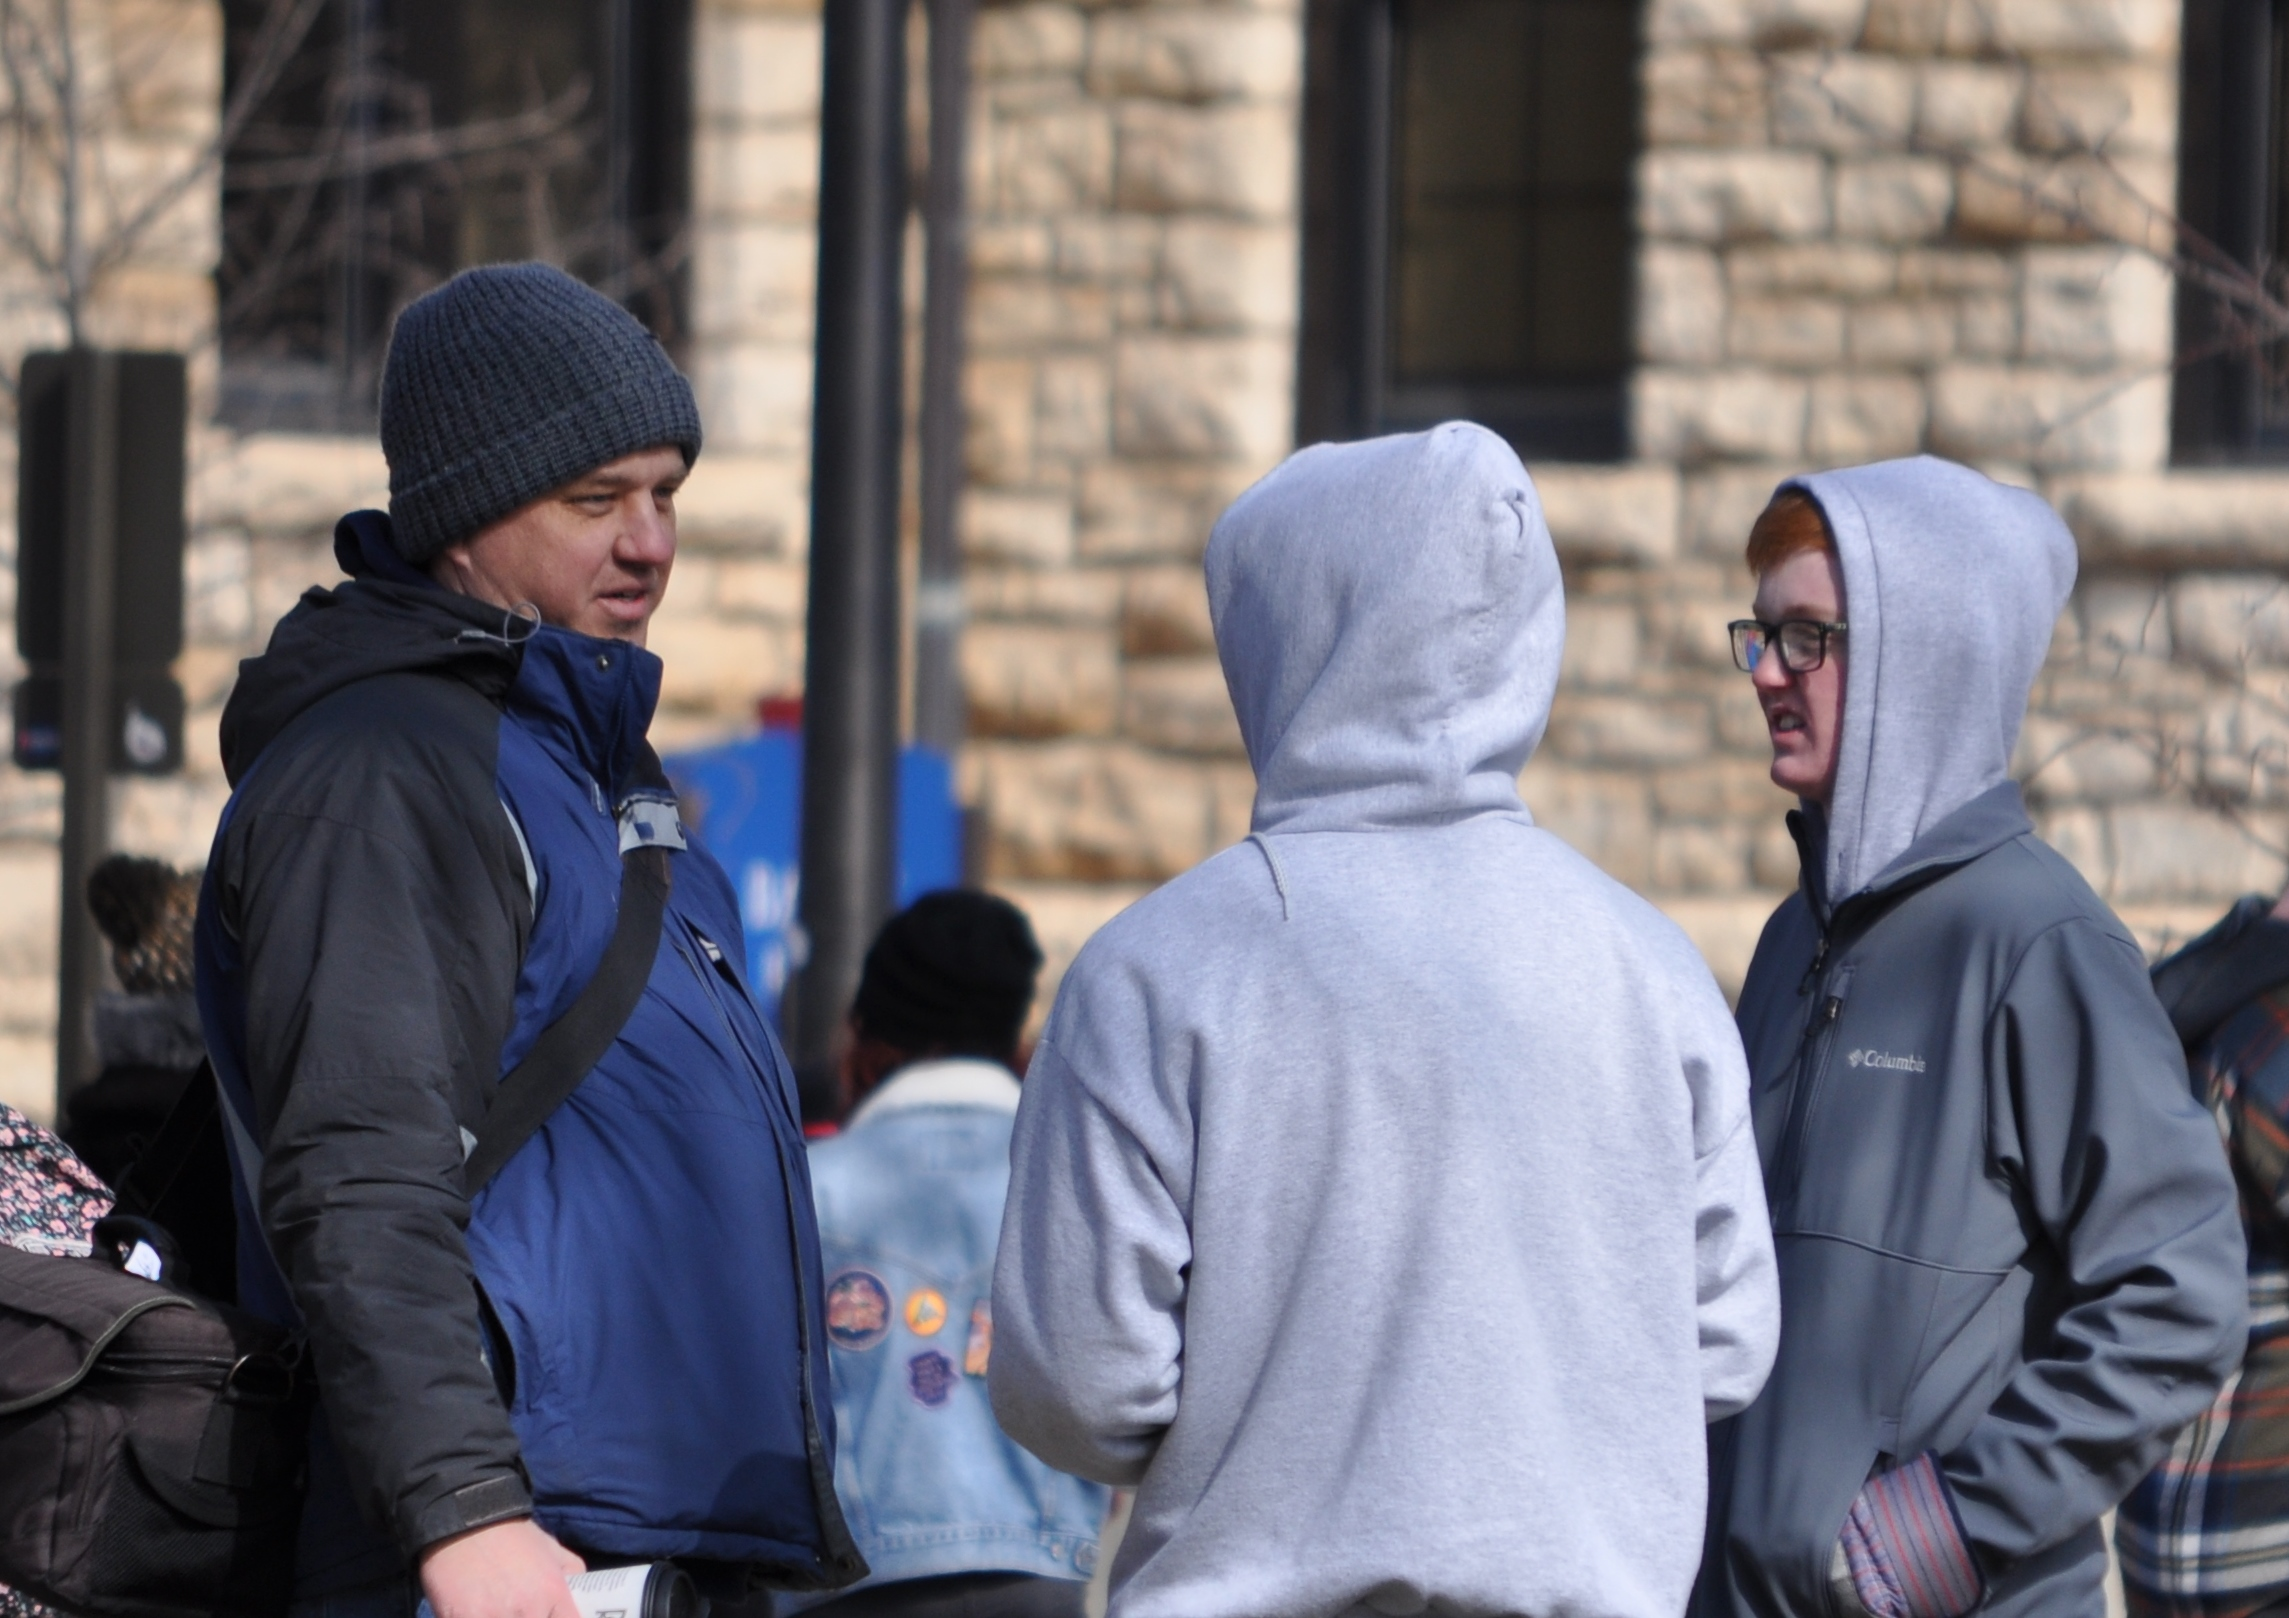 Sean (right) and Benjamin (center) talk to their JFA mentor, Paul Kulas (left), about Benjamin's first conversation at the KU outreach in March.